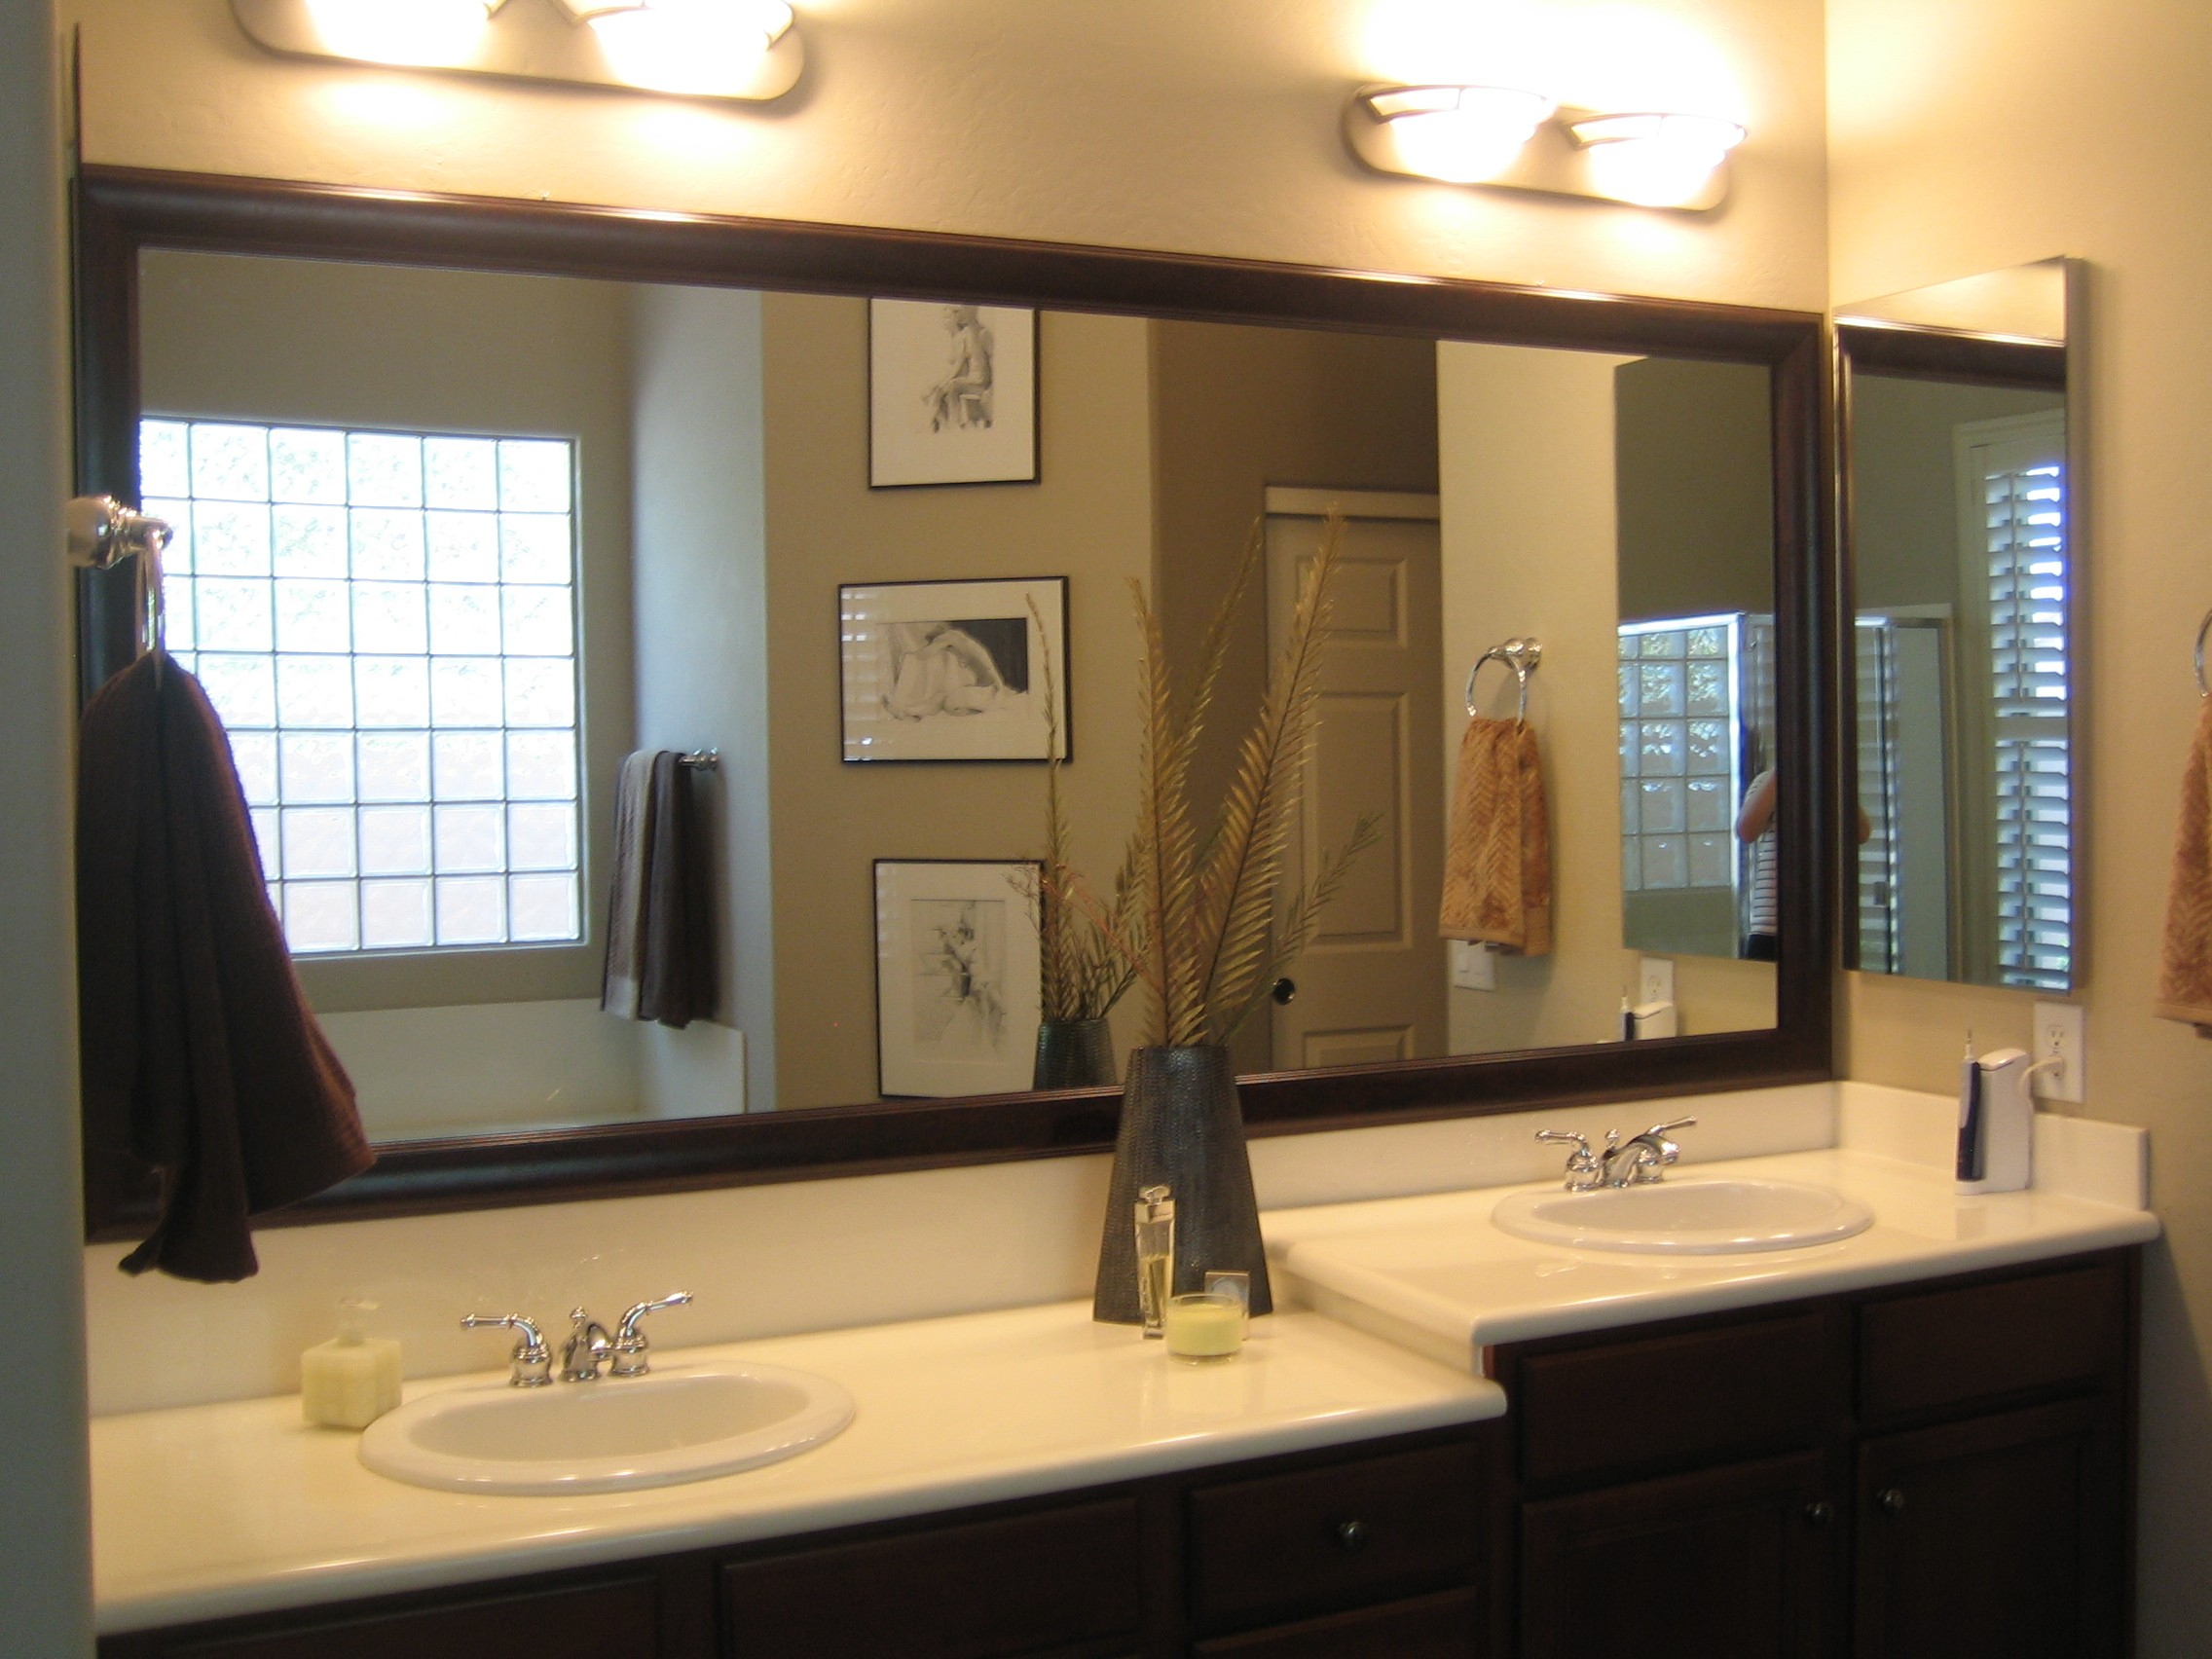 Engaging Bathroom Vanities Lights And Mirrors Standard for dimensions 2272 X 1704